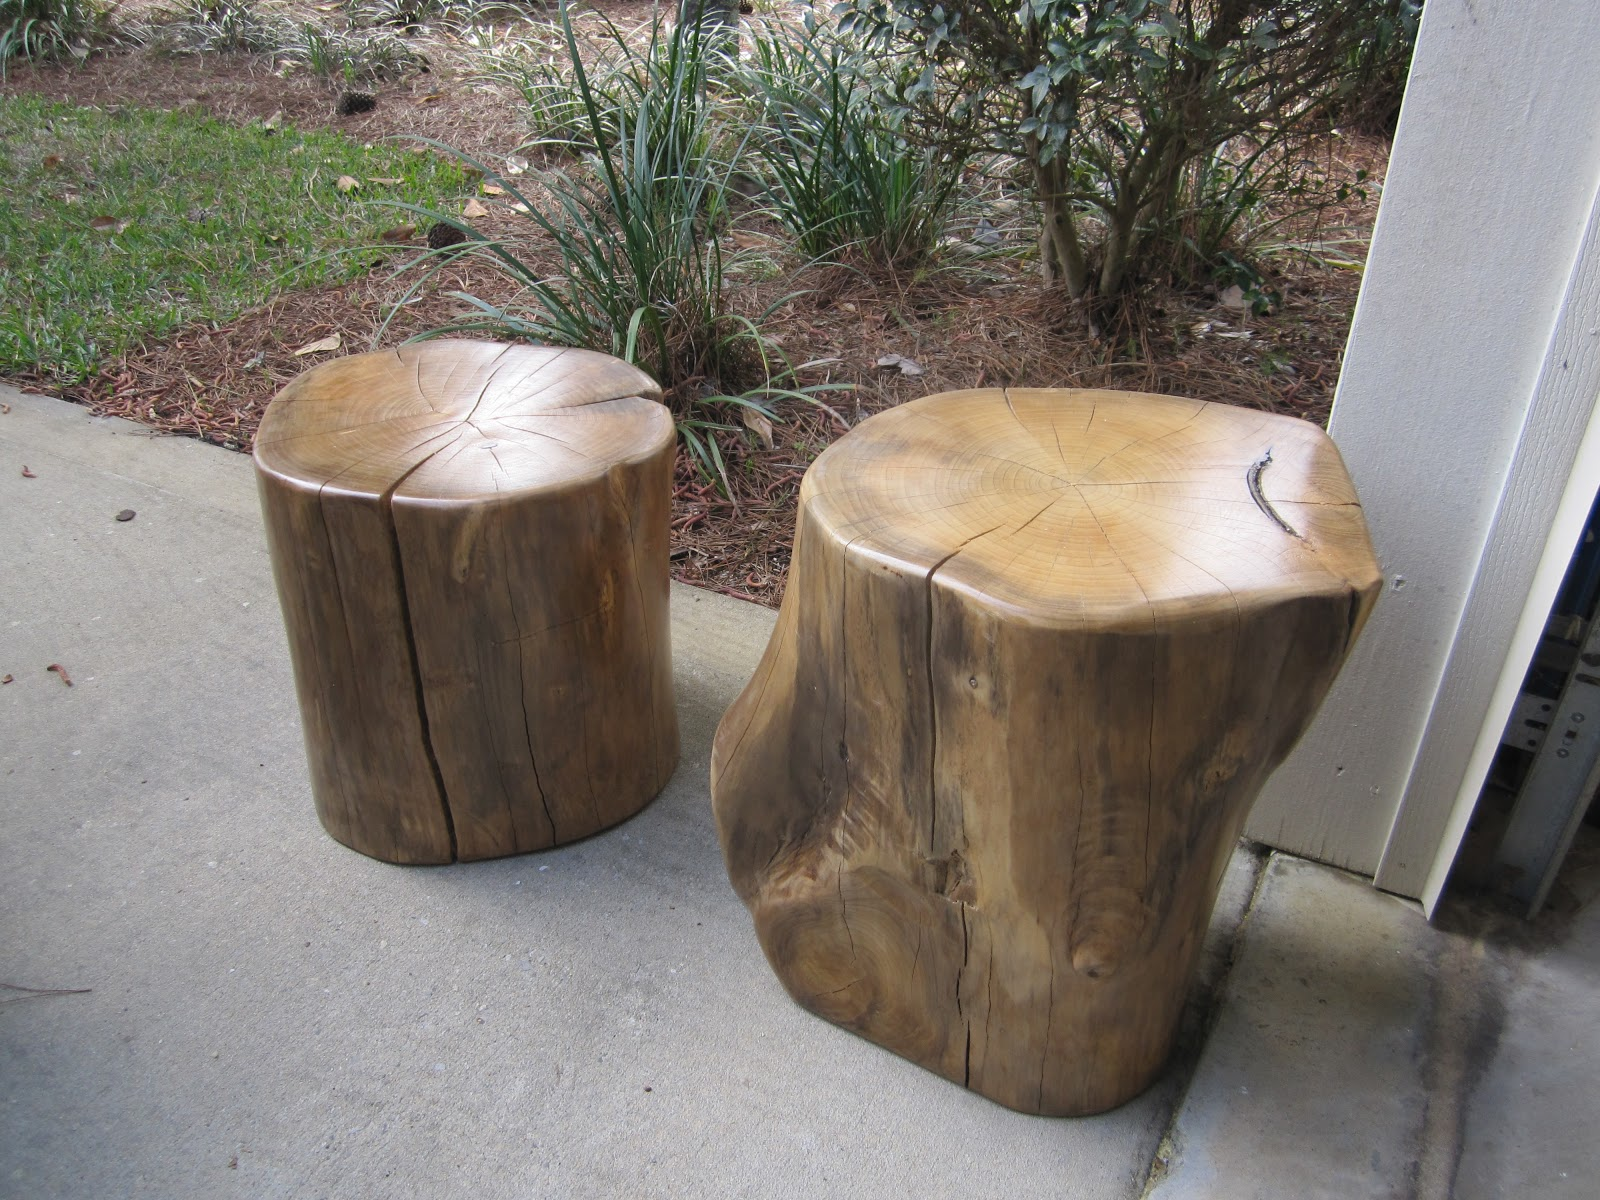 Munggur Tree Trunk Coffee Table Large For Sale Weylandts South. These Two  Magnolia Stumps Were Reclaimed From A Landscape Dump Fun To